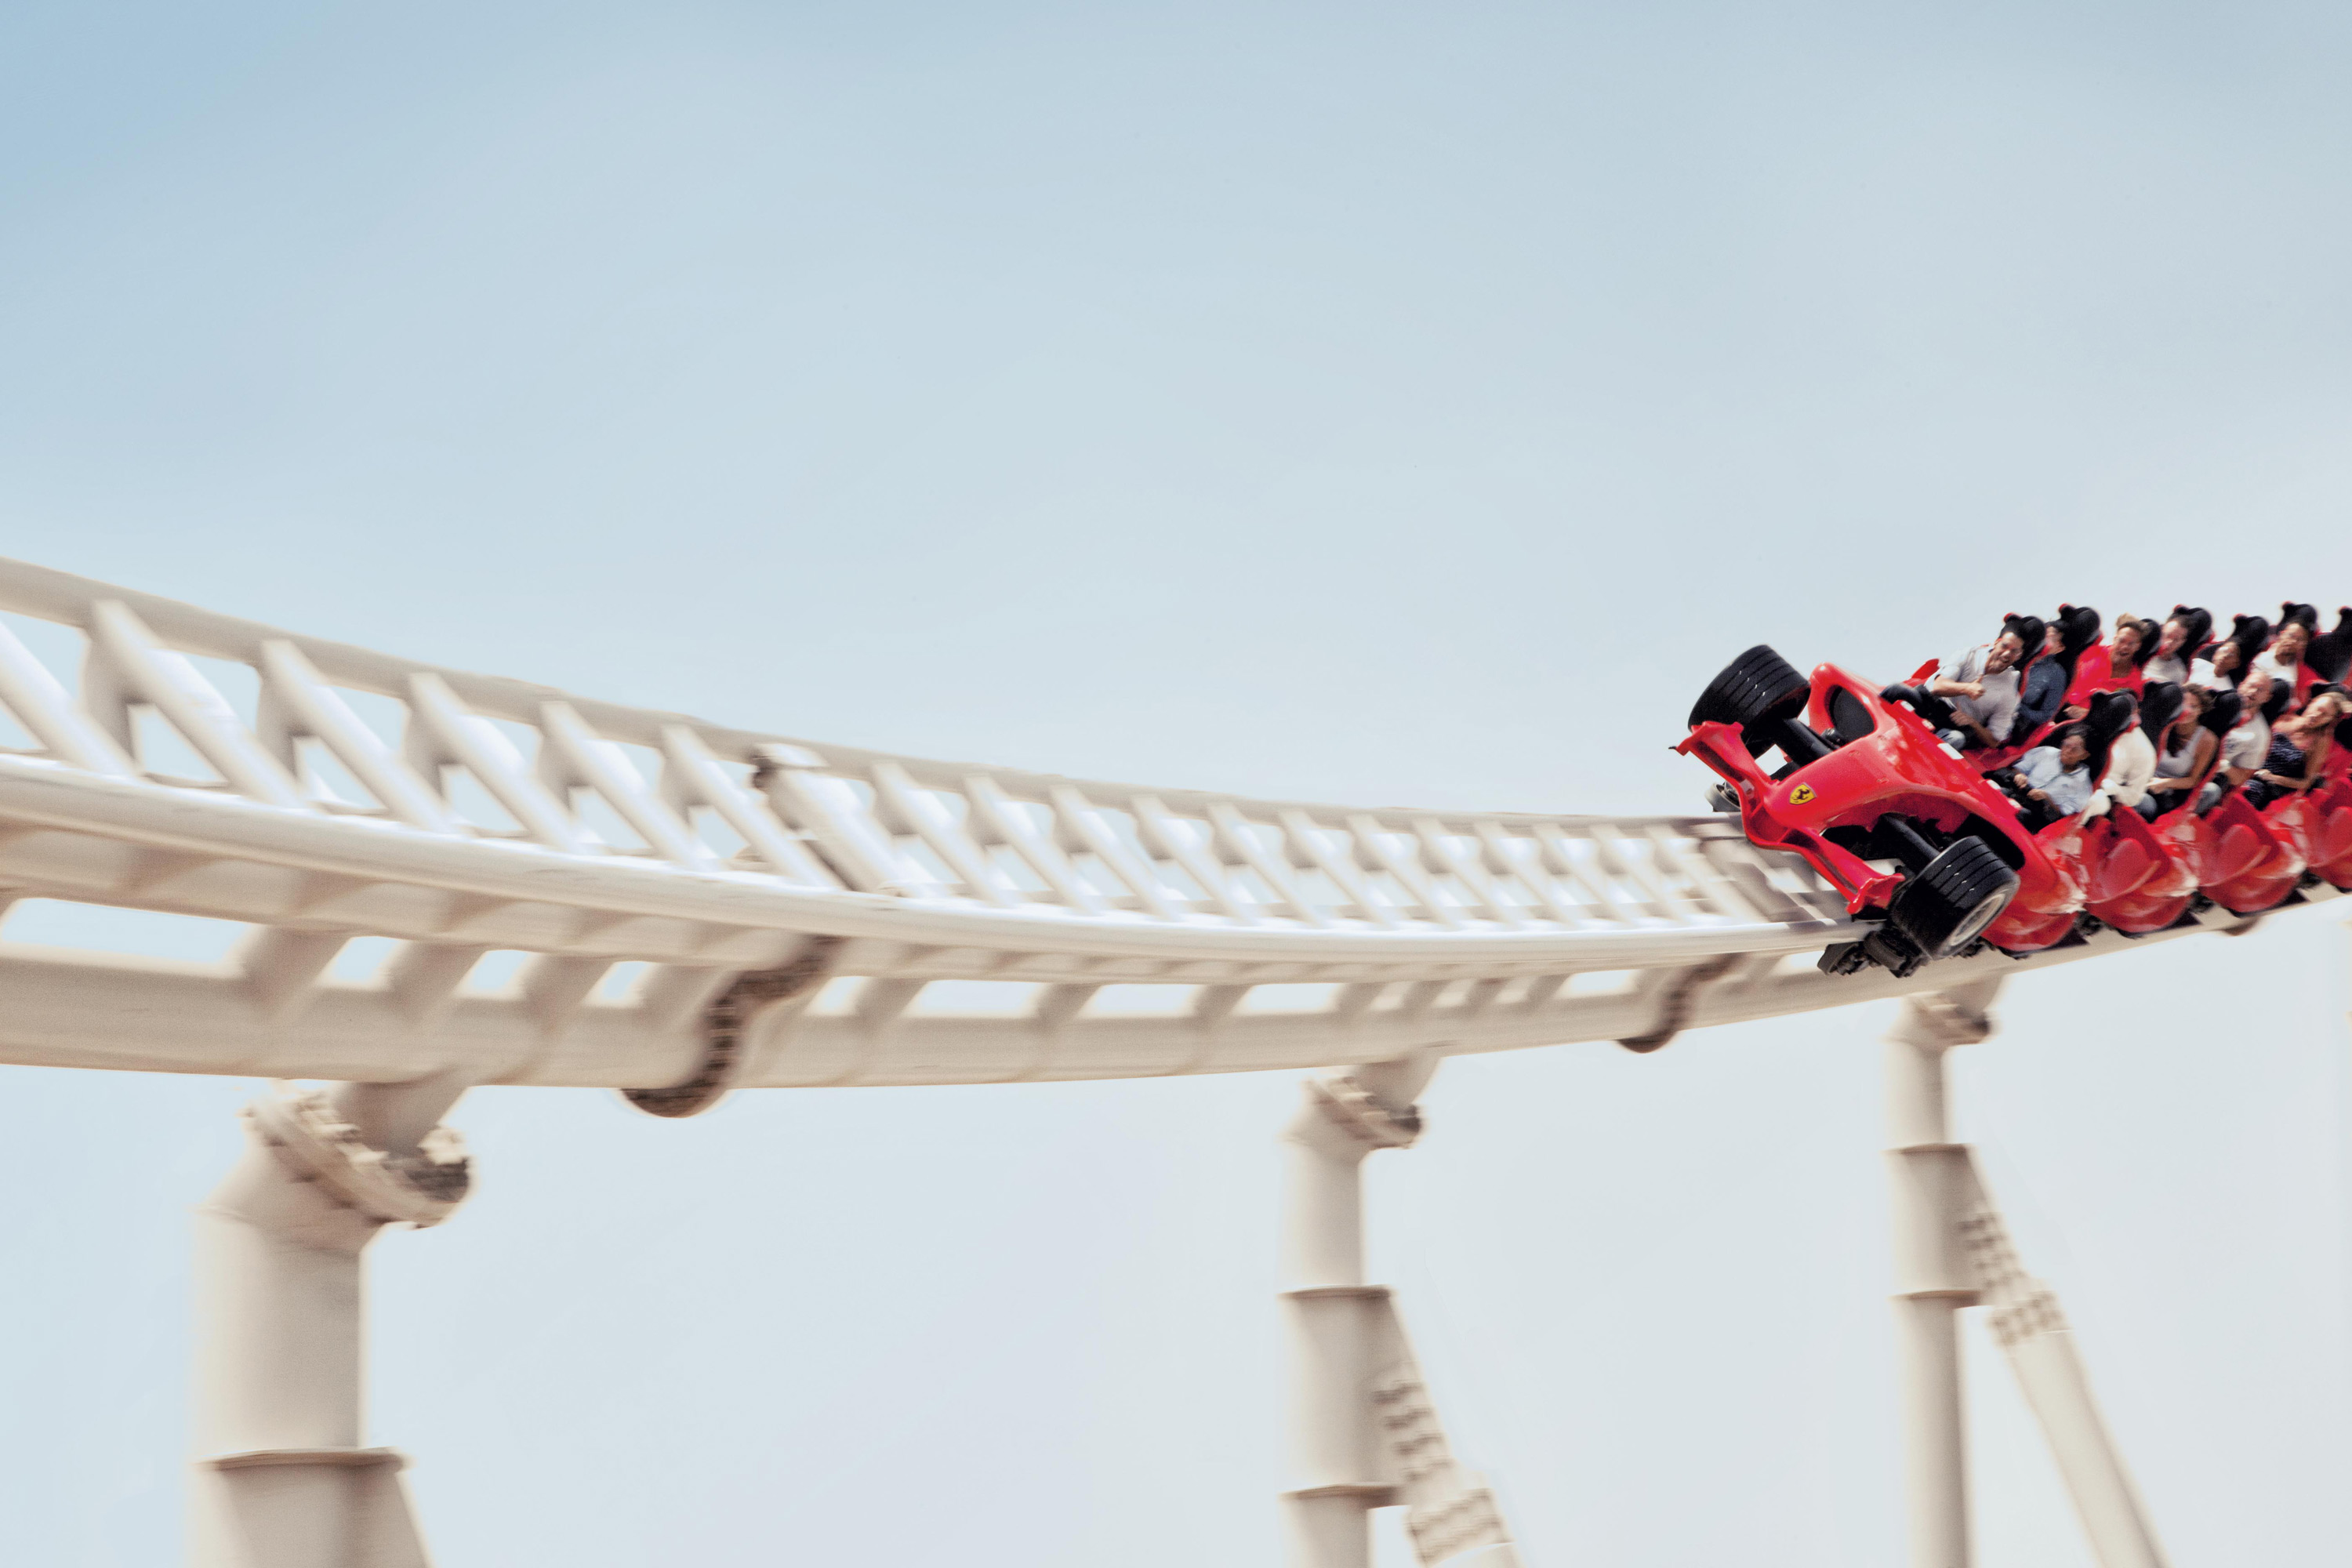 Ferrari World Abu Dhabi launches Coaster Lab edutainment programme